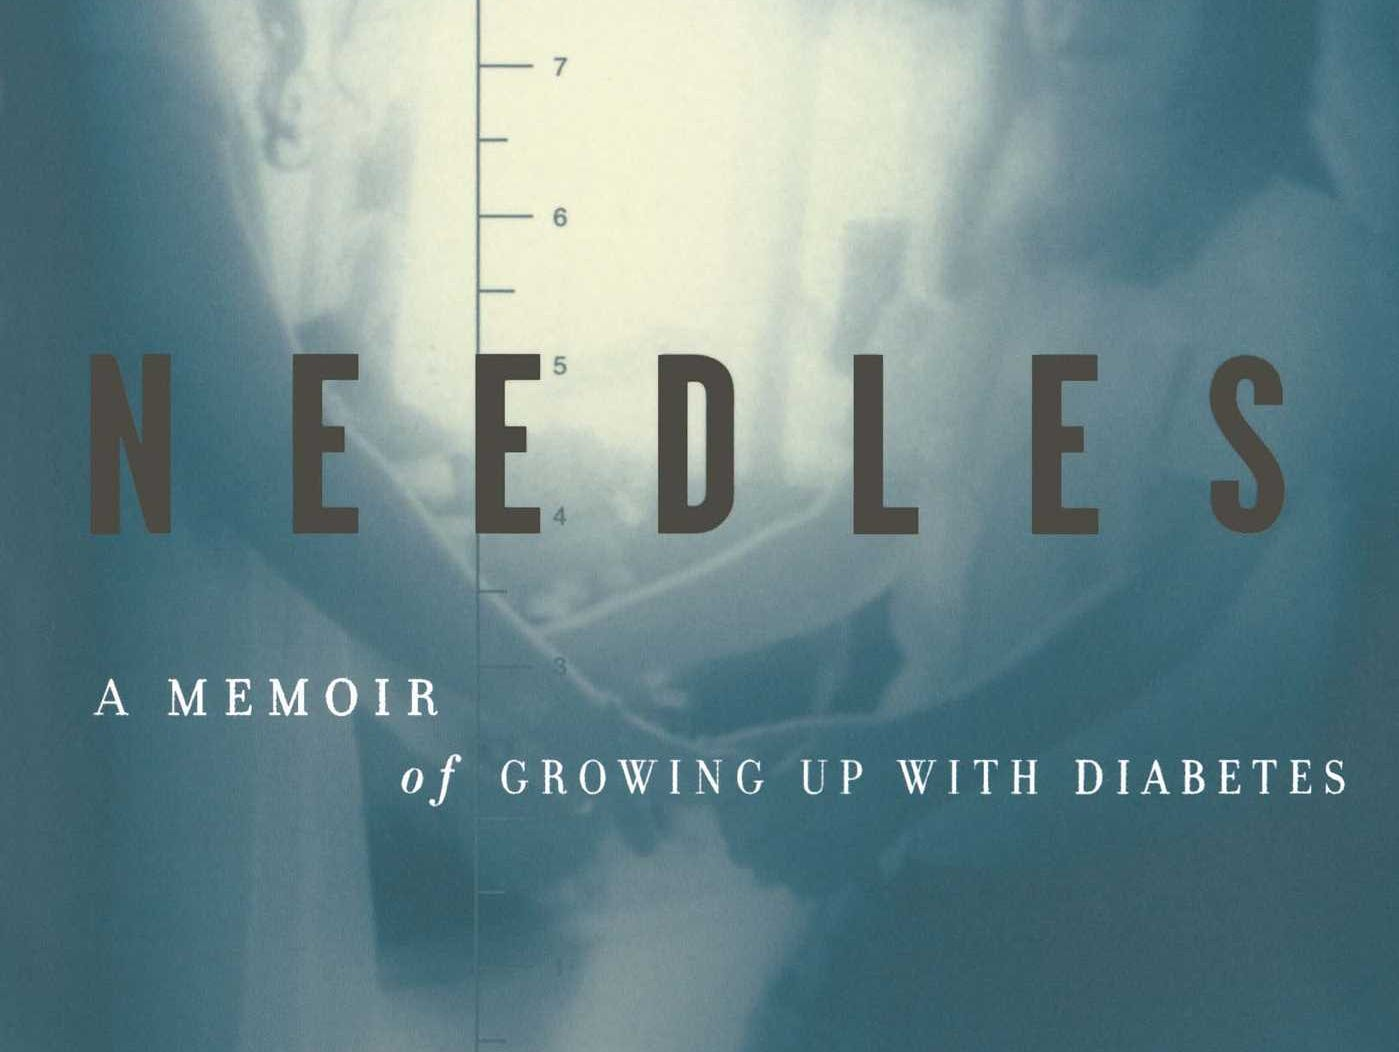 As a thank you for supporting Pulitzer Prize-winning journalism, we're giving 20% off Andie Dominick's memoir.